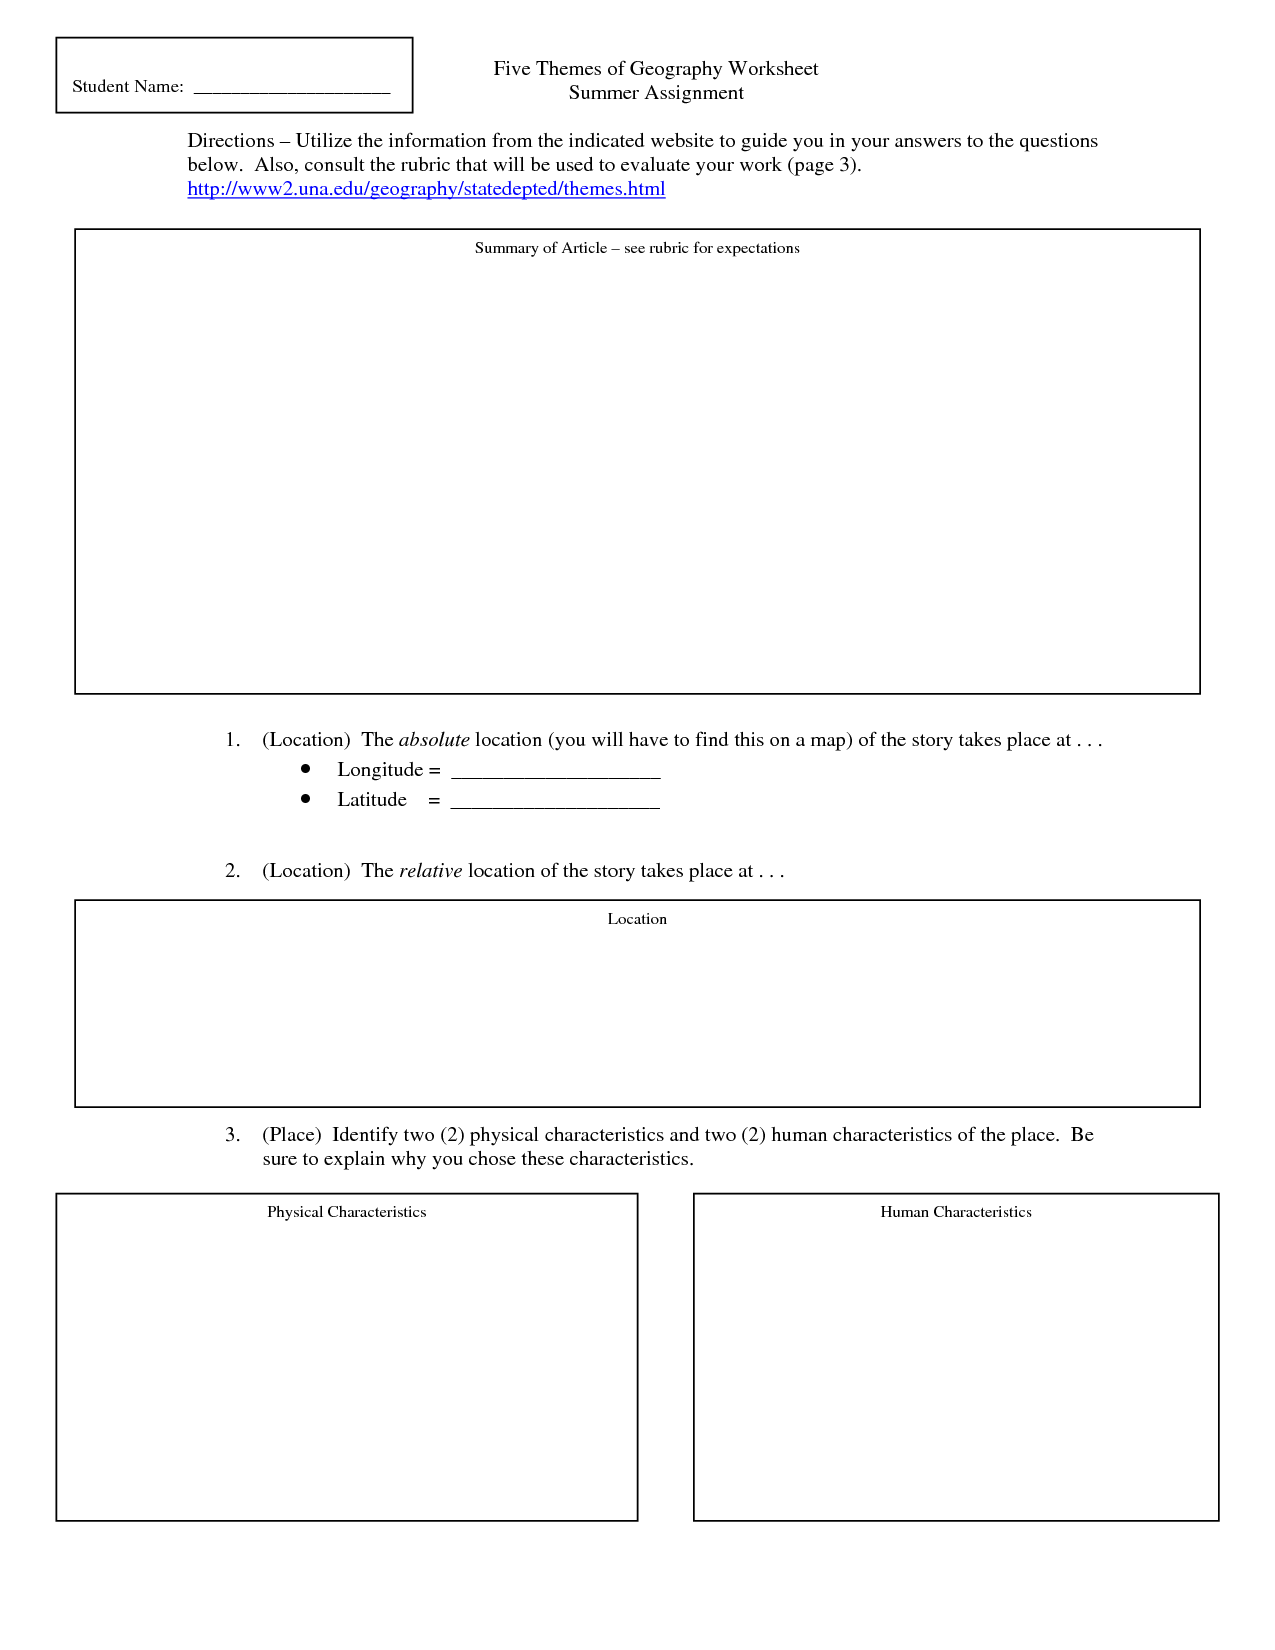 5 Themes Of Geography Worksheets